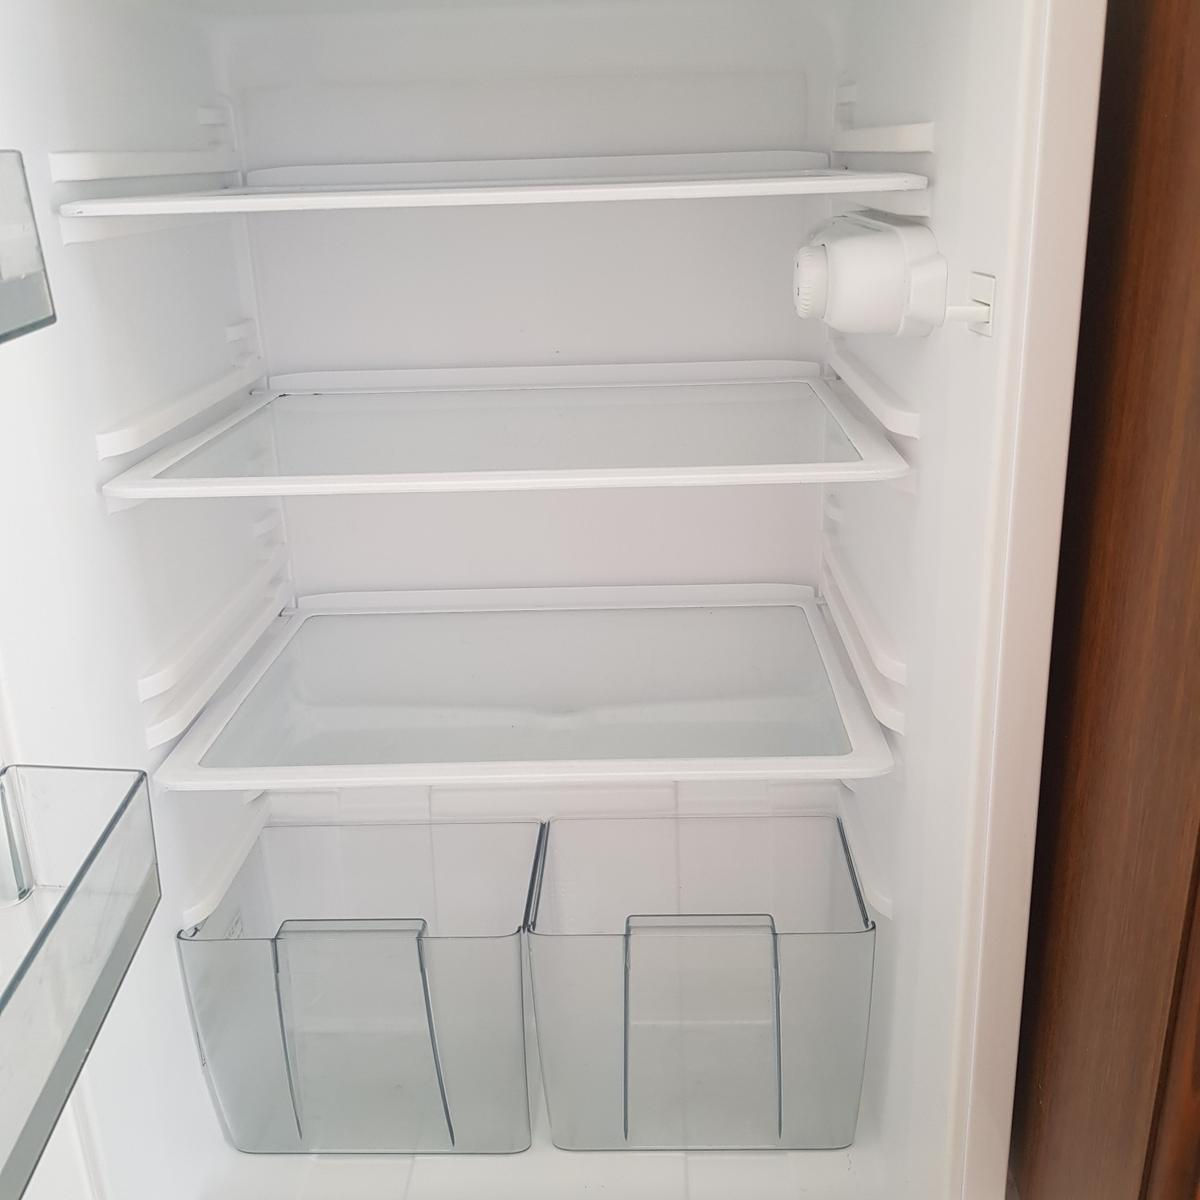 white integrated fridge  5 years old good condition except a very slight split in the seal on the top outer corner but hasnt affected use.  measures; w 550mm d 550mm h 870mm  collection, or local delivery to lordswood can be arranged following the safe distancing rules